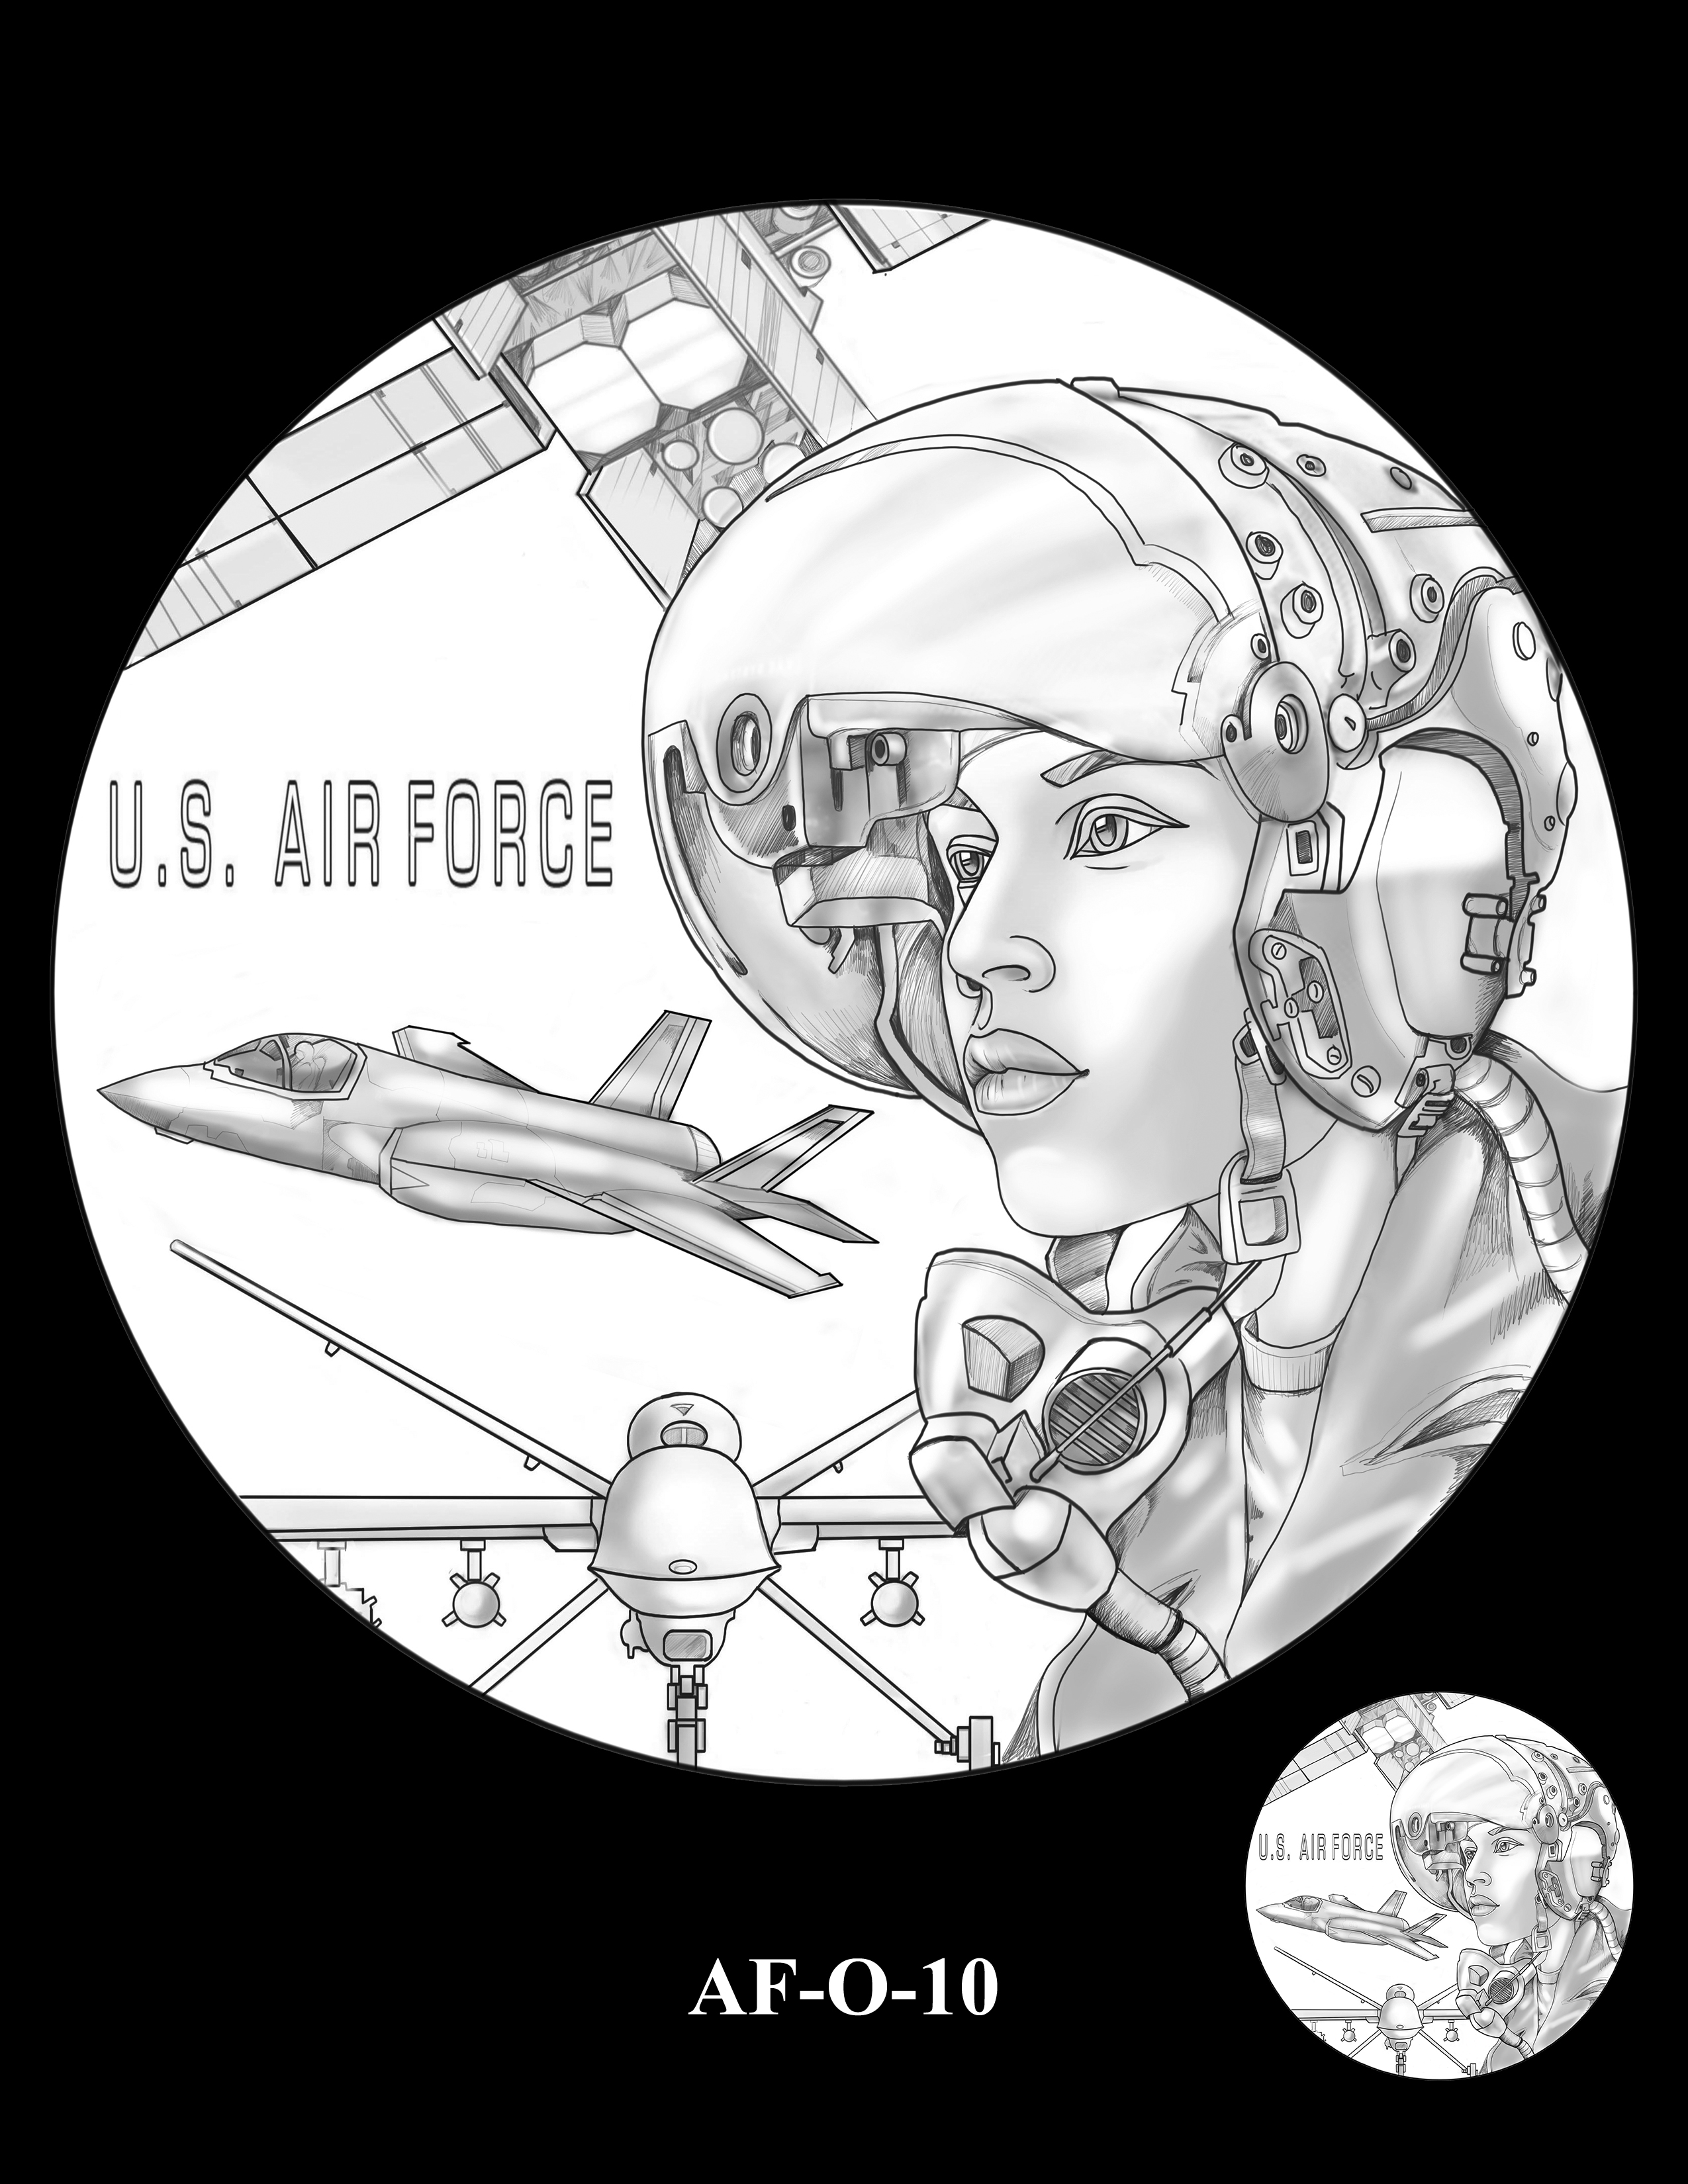 ccac october 16 2018 meeting 2020 air force medal coin update Proof Sets Boxed 1997 united states mint prestige set us proof set